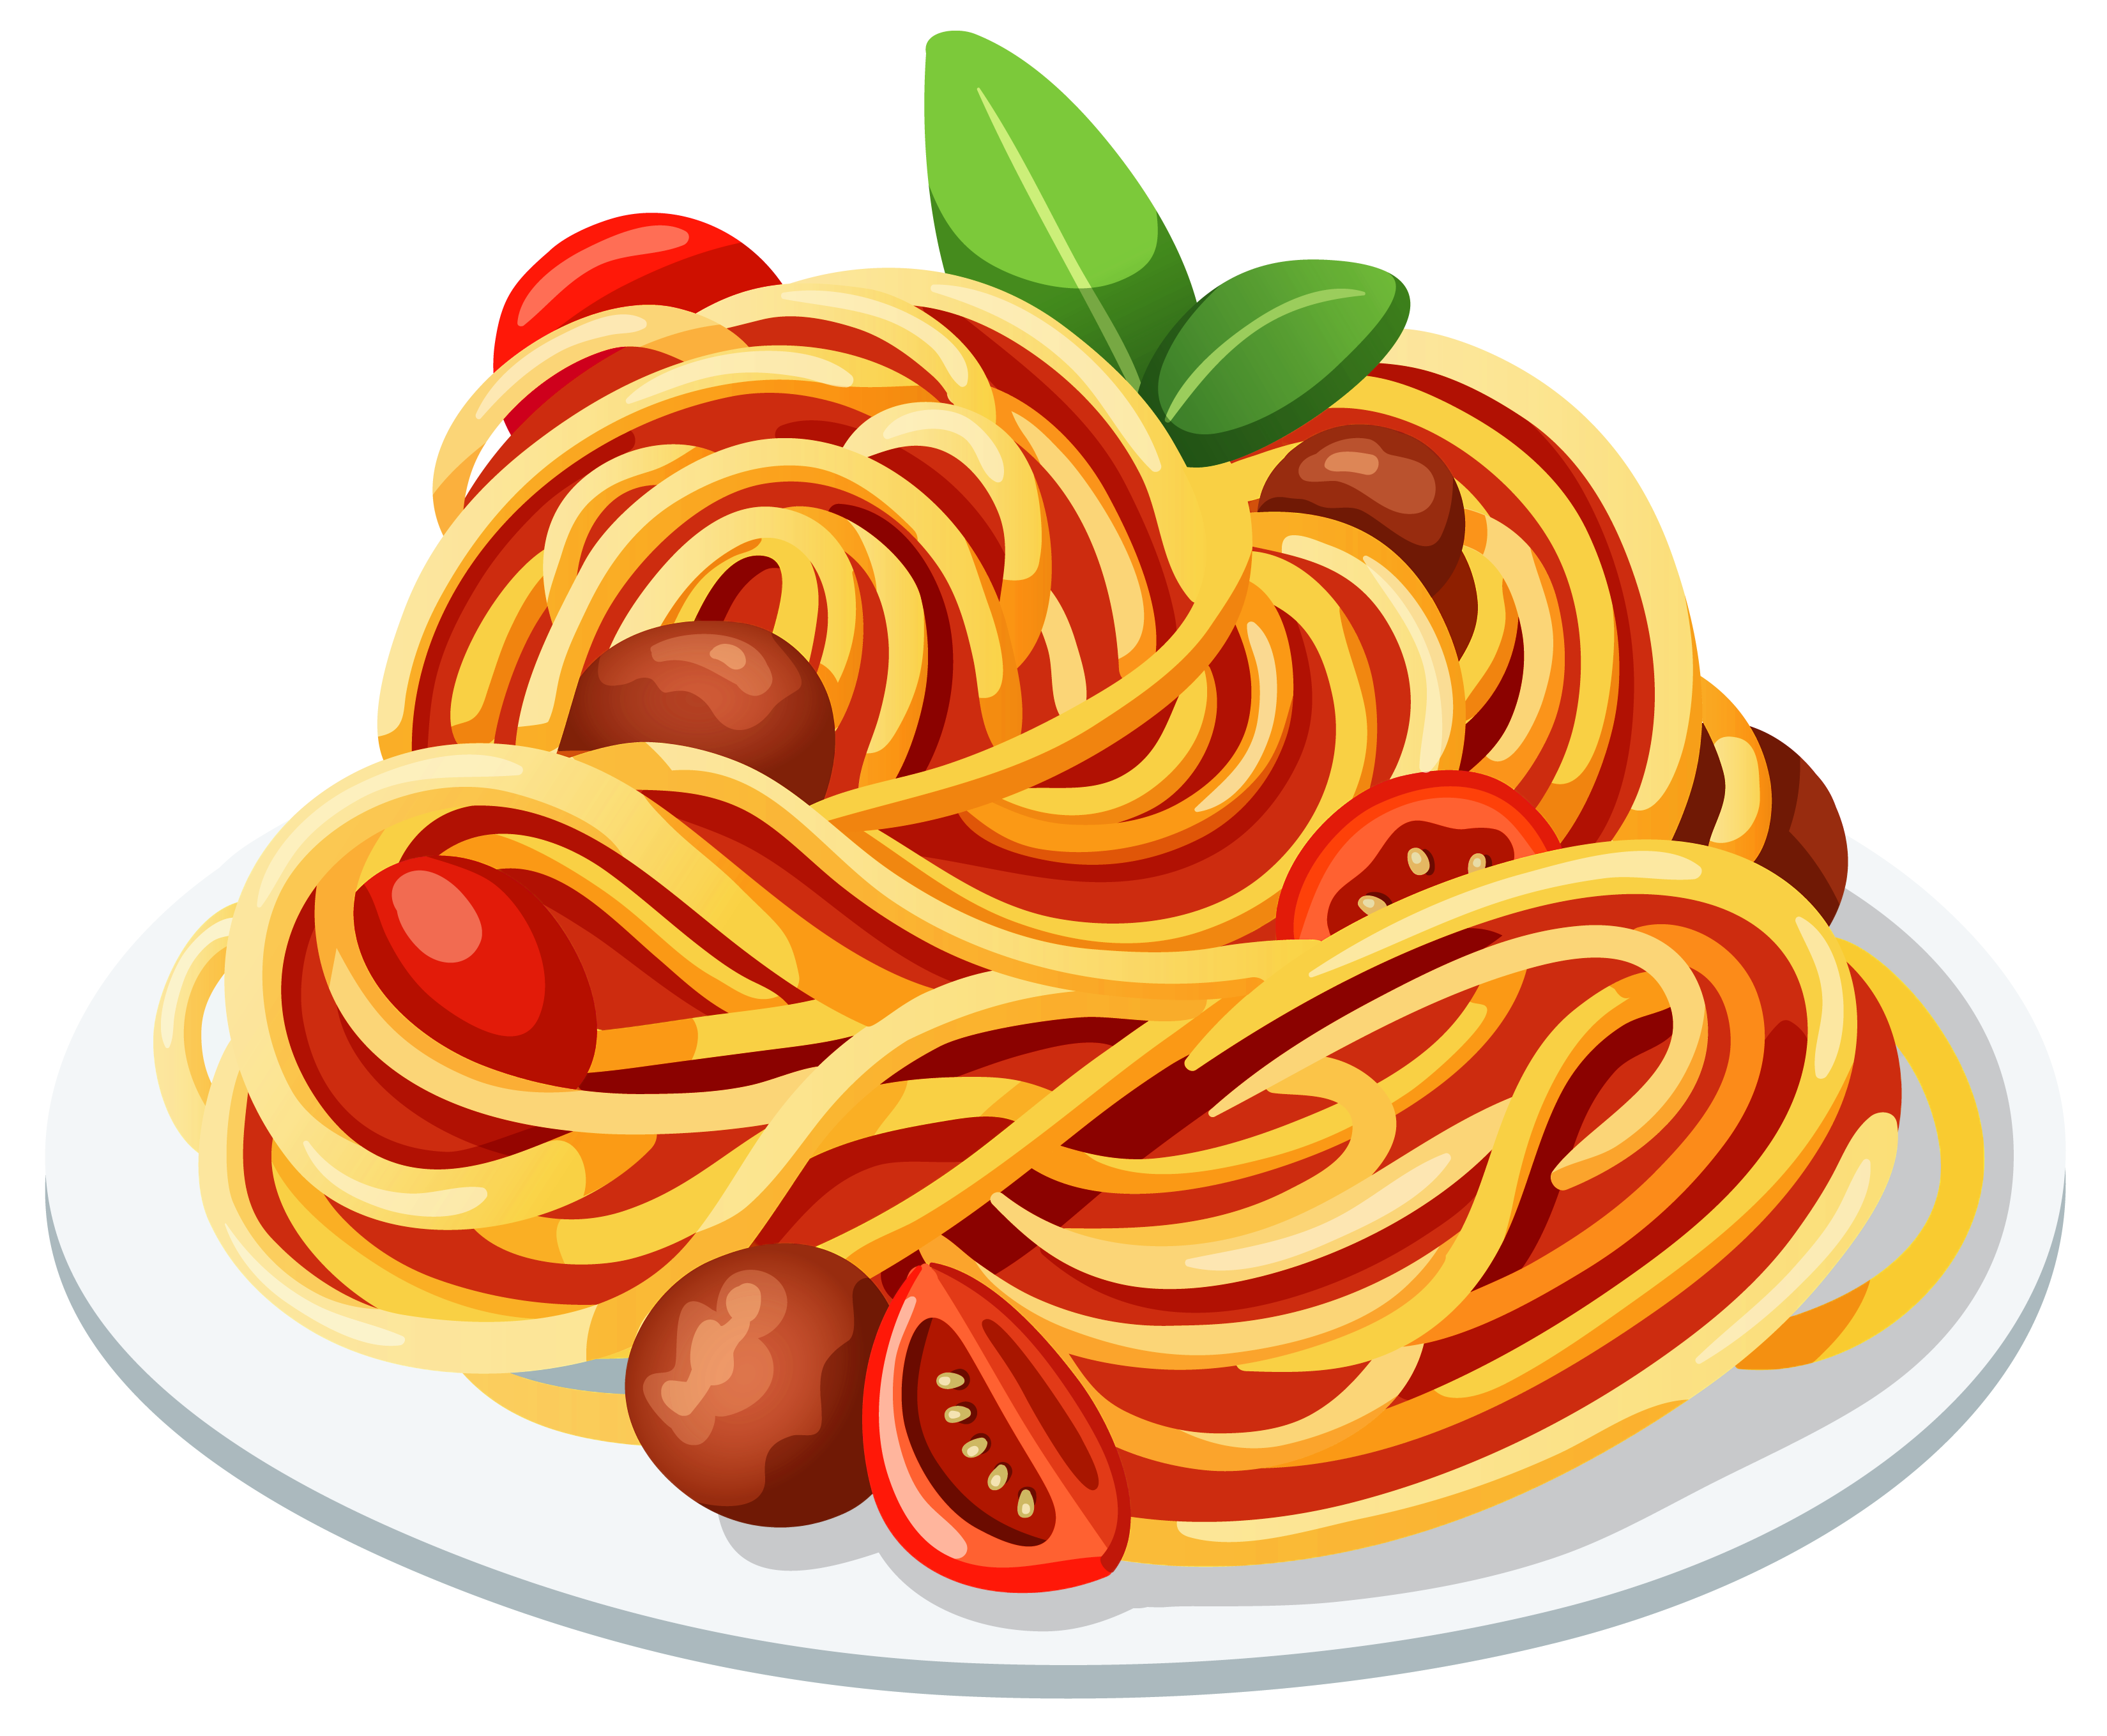 Plate of spaghetti png